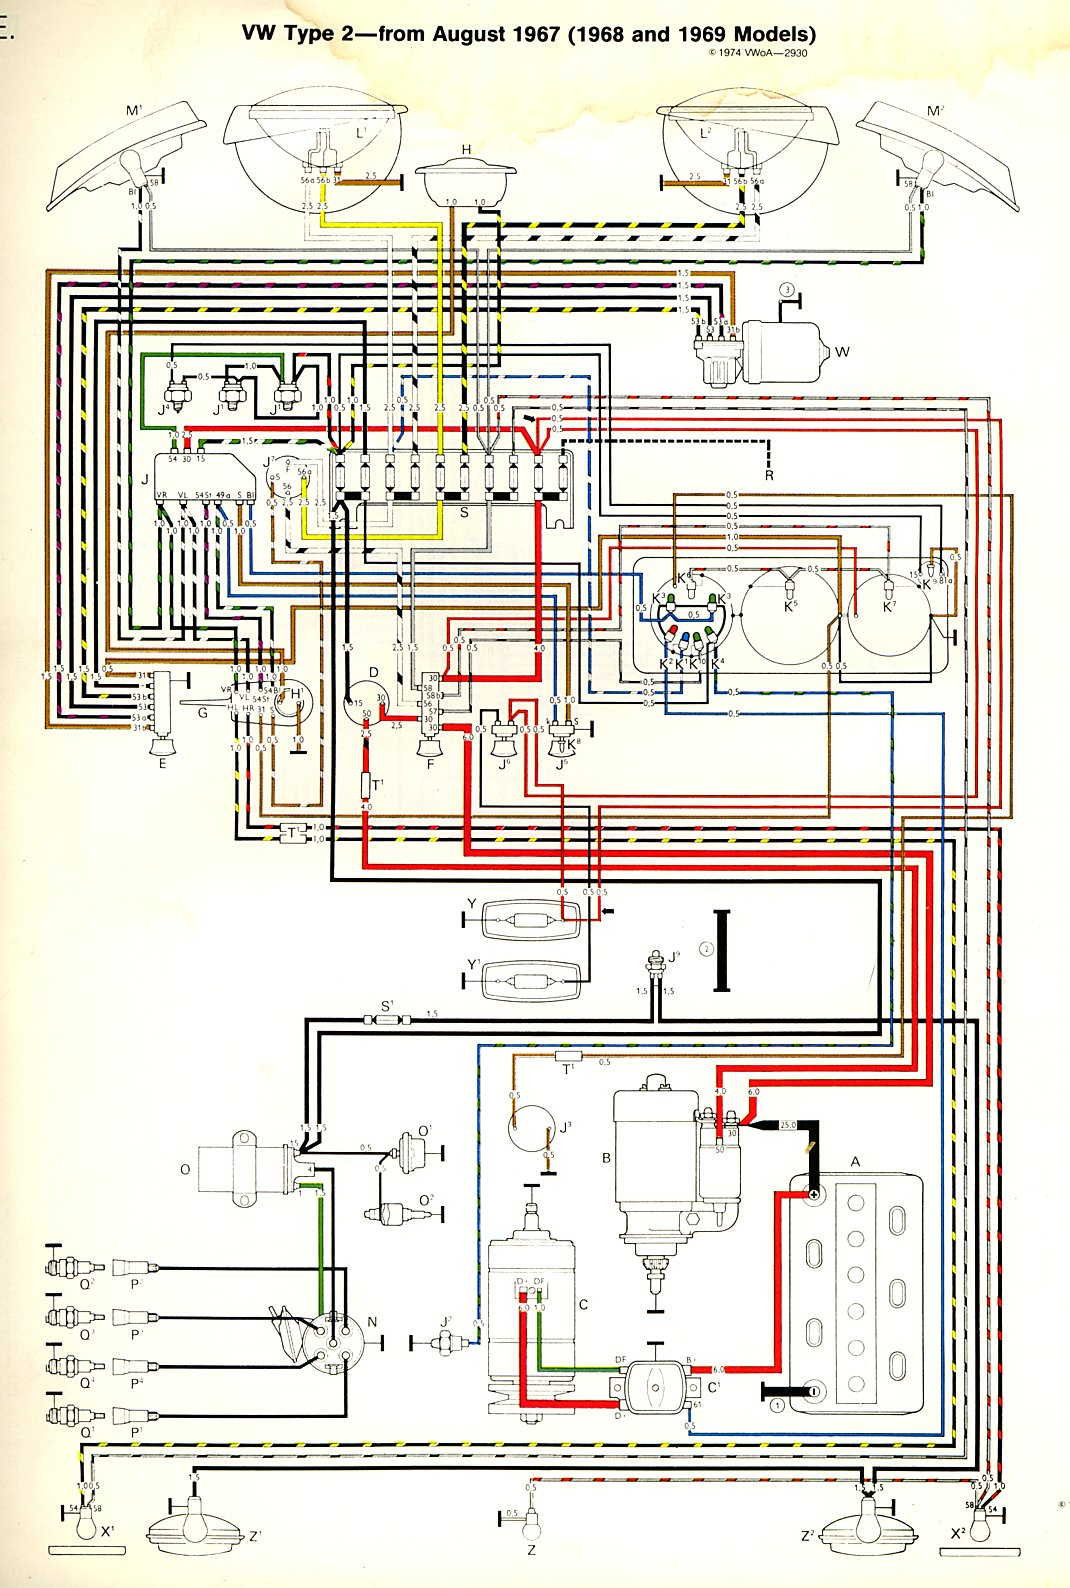 baybus_6869a 1968 69 bus wiring diagram thegoldenbug com 1968 vw bug wiring diagram at aneh.co